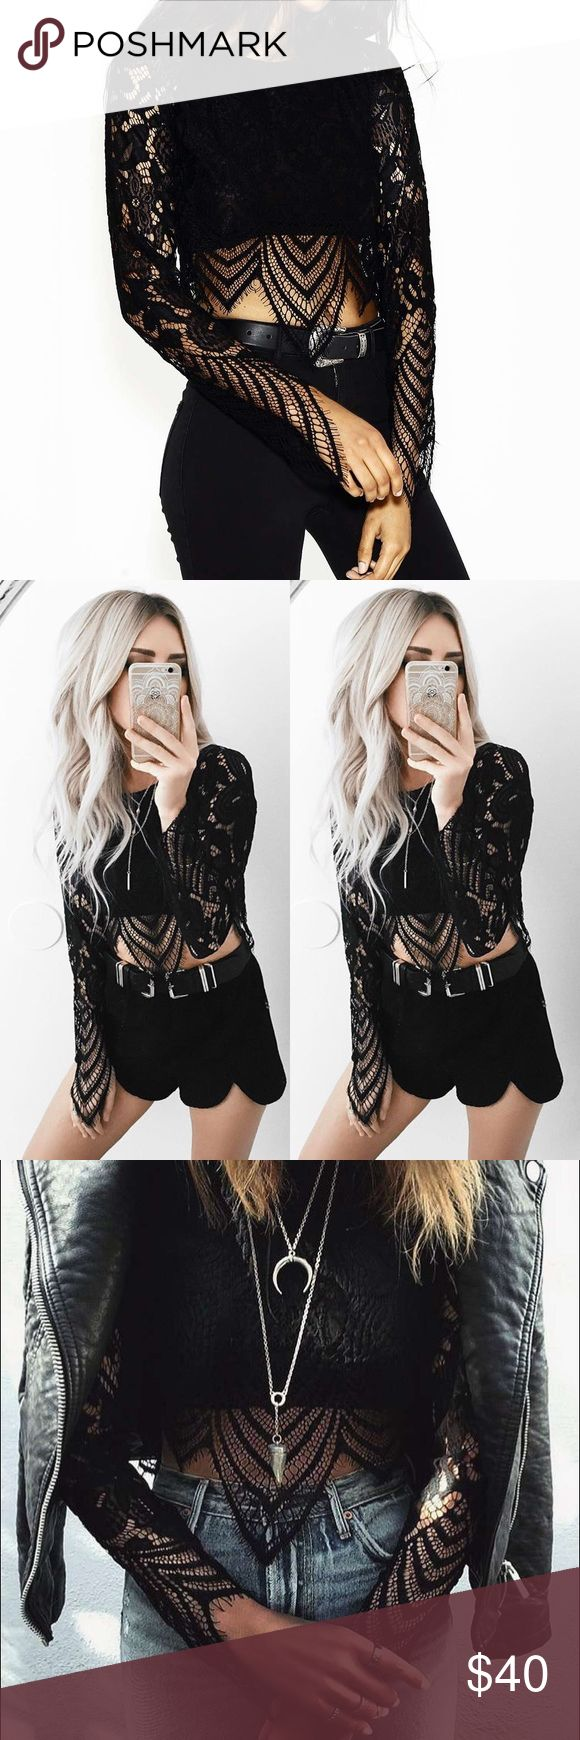 Wrstbhvr worst behavior black lace crop top shirt Perfect condition, new with tags.  Not from Lulus Lulu's Tops Crop Tops